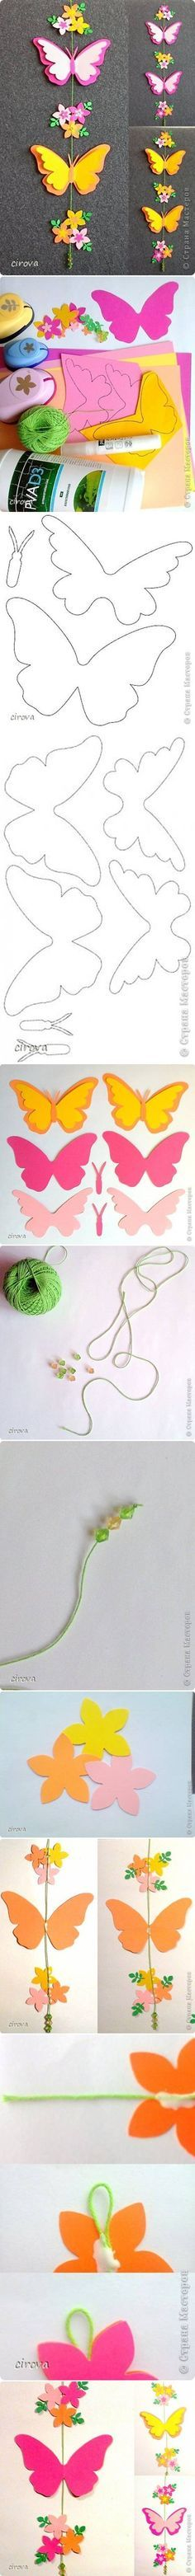 "<input+type=""hidden""+value=""""+data-frizzlyPostContainer=""""+data-frizzlyPostUrl=""http://www.usefuldiy.com/diy-paper-butterfly-mobile/""+data-frizzlyPostTitle=""DIY+Paper+Butterfly+Mobile""+data-frizzlyHoverContainer=""""><p>>>>+Craft+Tutorials+More+Free+Instructions+Free+Tutorials+More+Craft+Tutorials</p>"